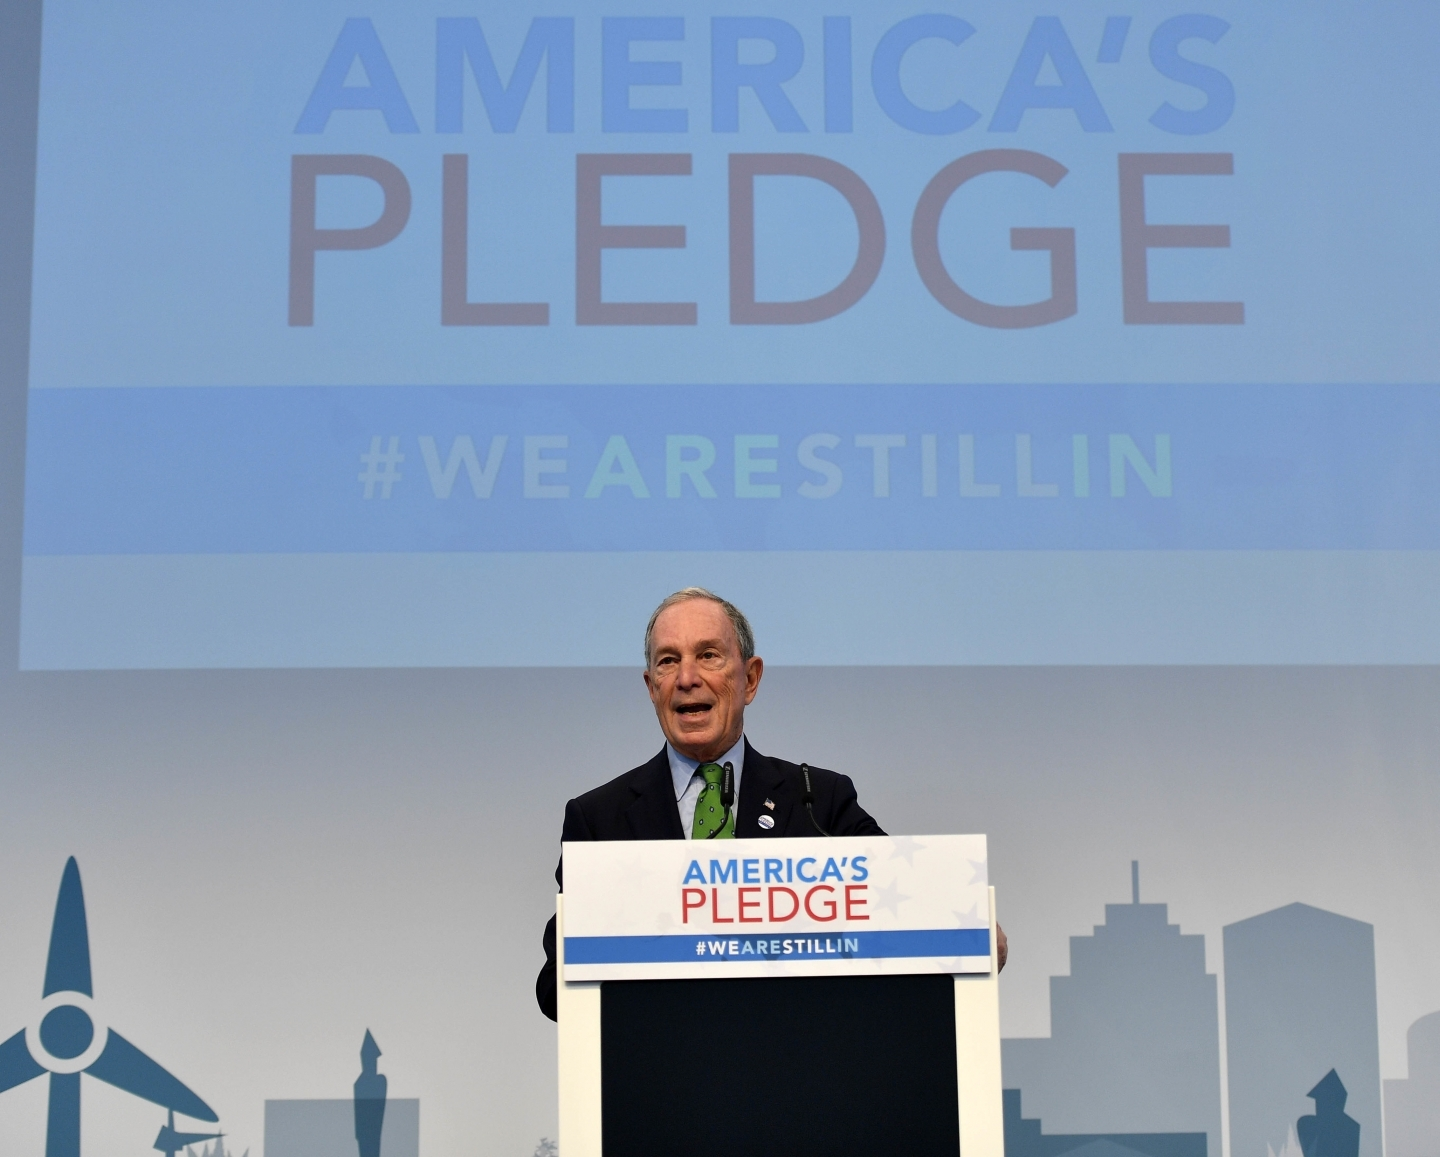 Former New York Mayor Michael Bloomberg speaks in the US Climate Action Center at COP23 in Bonn, Germany, Saturday, Nov. 11, 2017. (AP Photo/Martin Meissner)